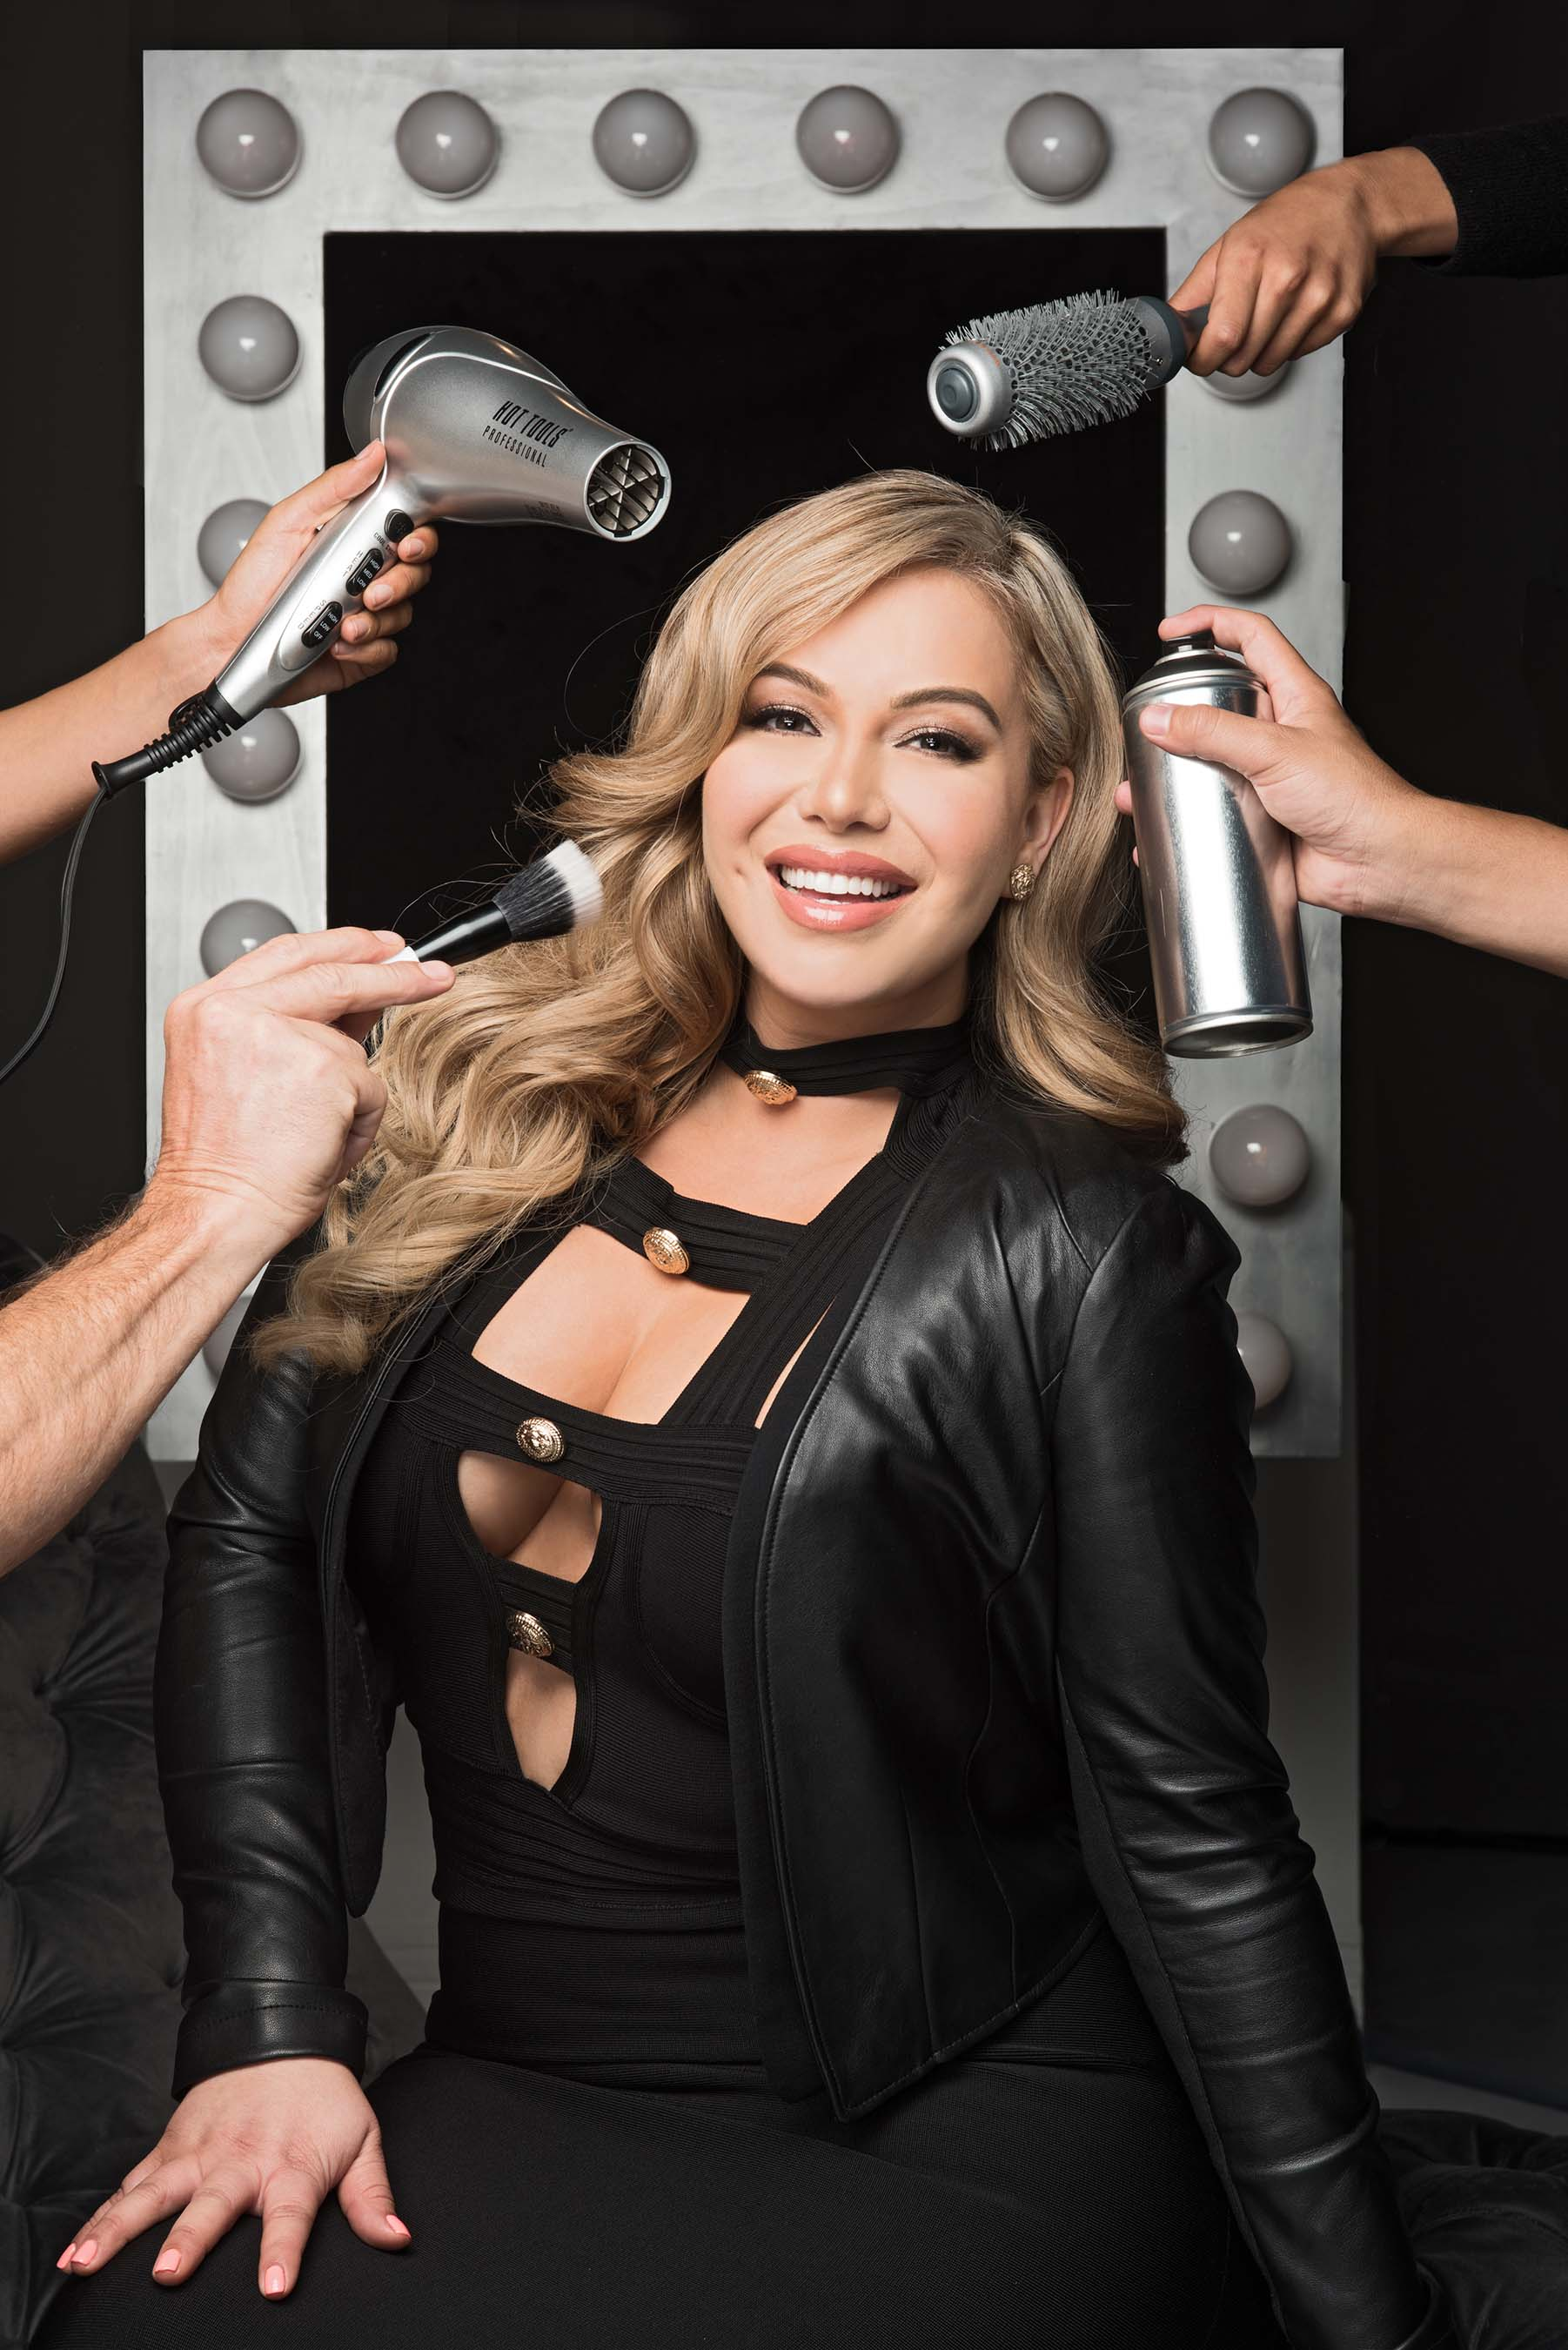 Chiquis solo pic